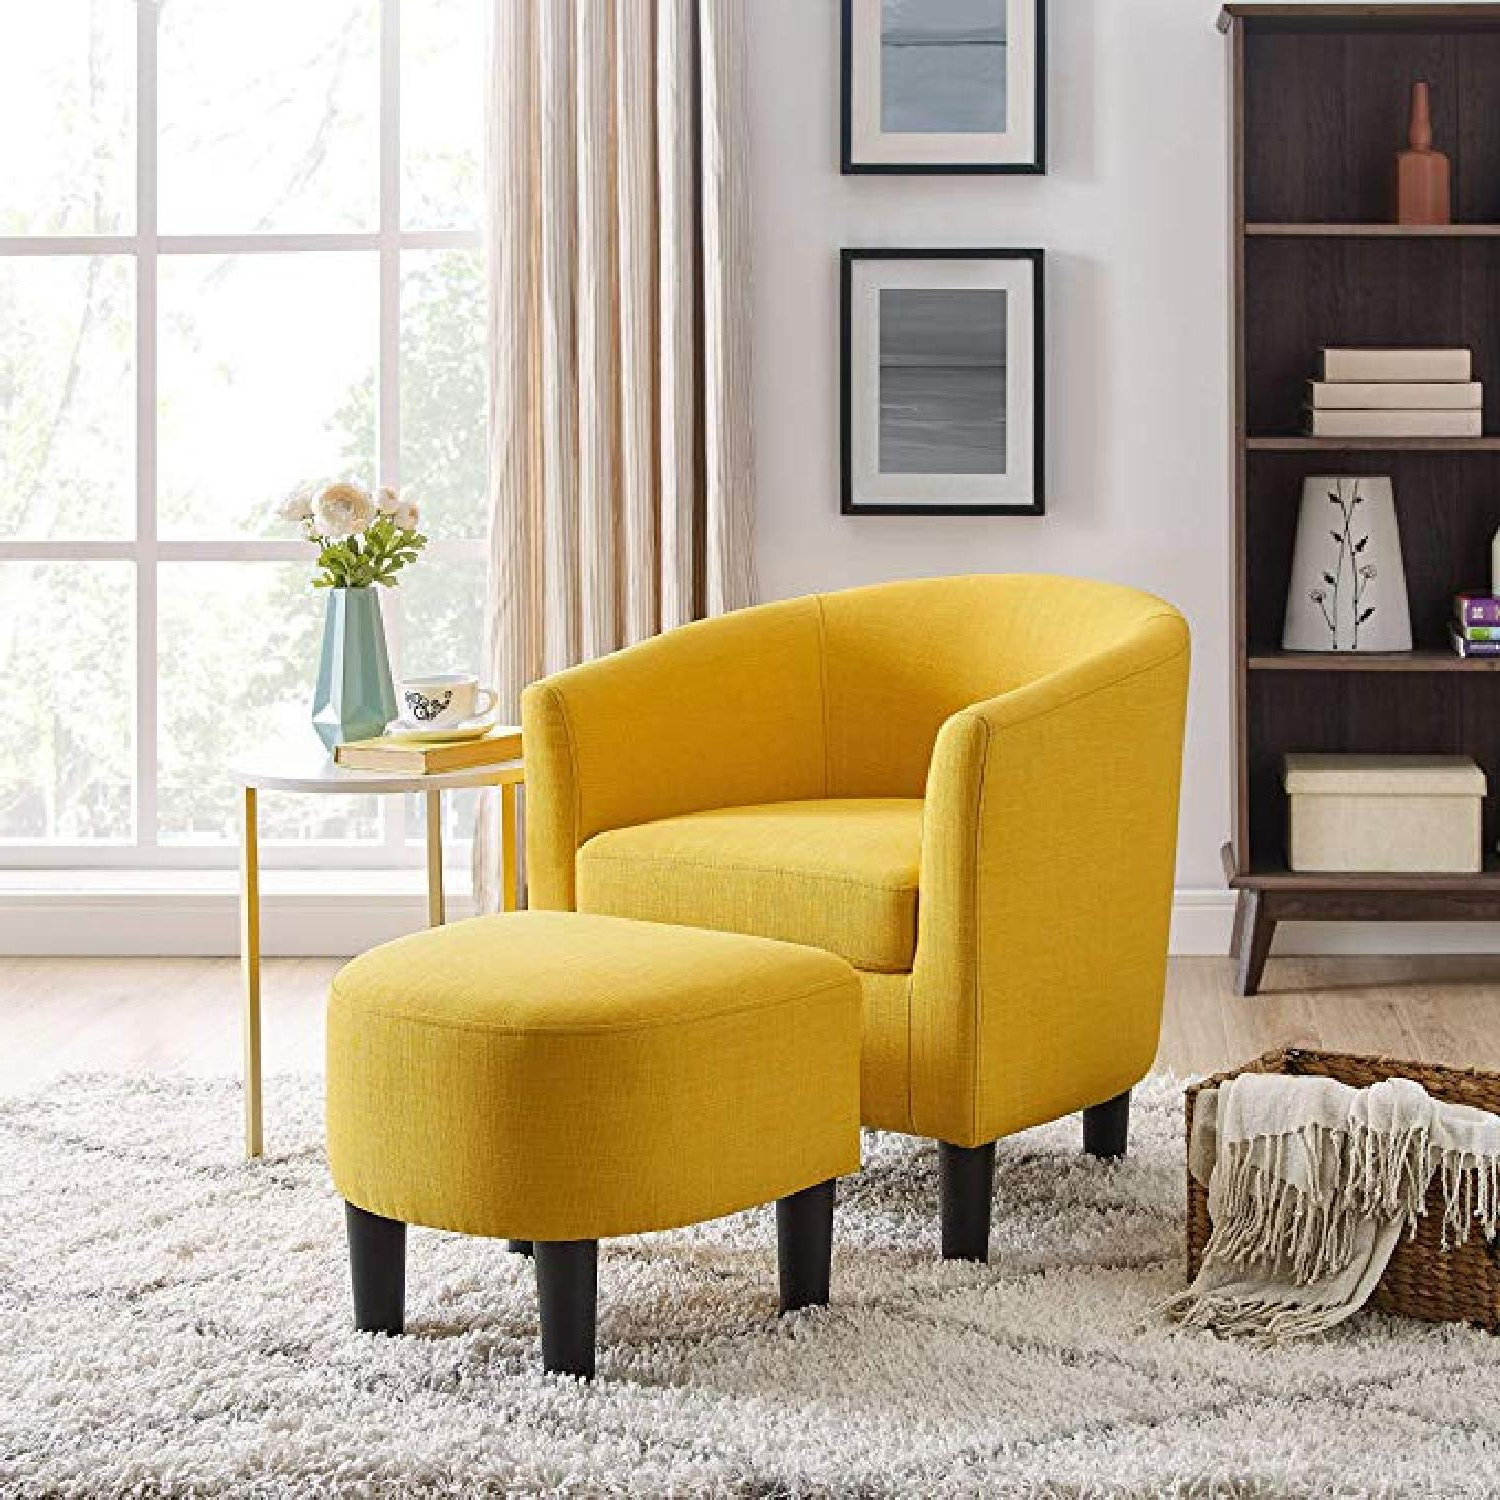 Jazouli Linen Barrel Chairs And Ottoman For Famous Latitude Run Jazouli Accent Chair & Ottoman (View 16 of 20)